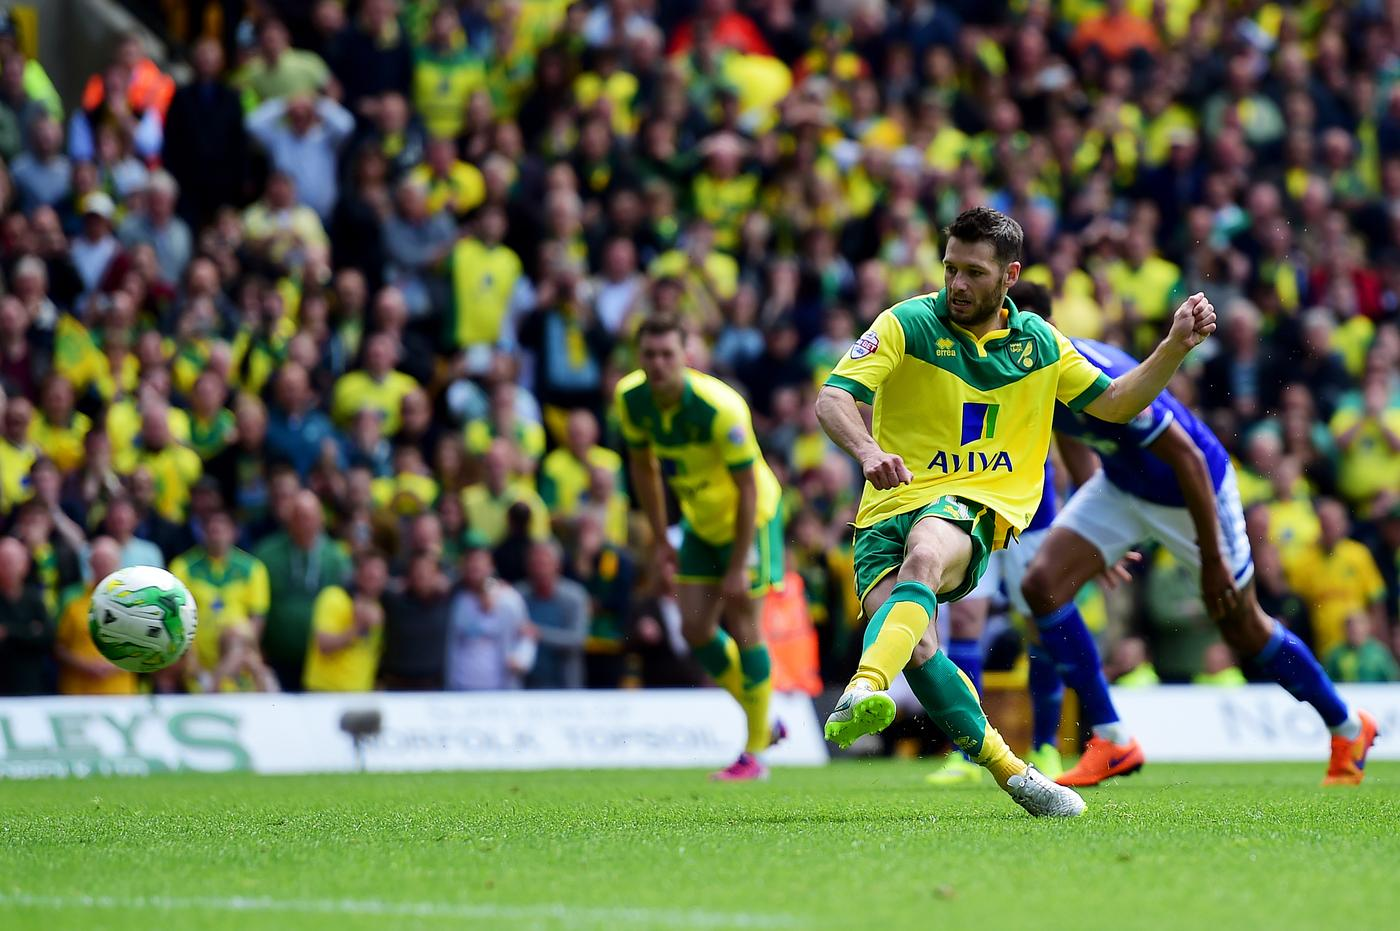 Will Norwich City finish the job and secure promotion to the Premier League?